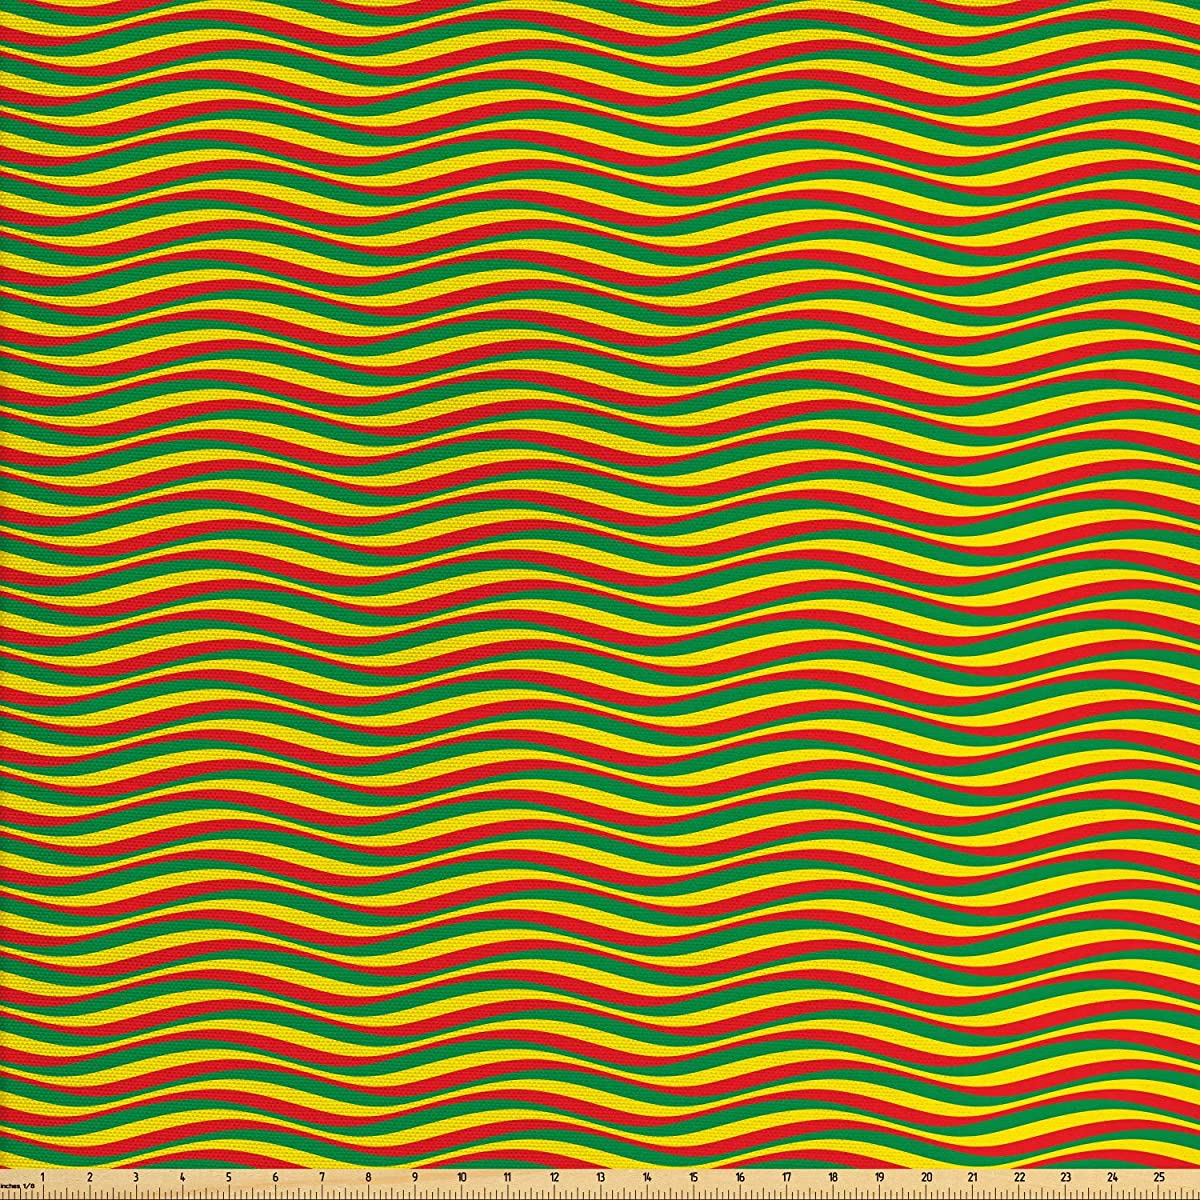 Ambesonne Rasta Fabric by The Yard, Vivid Colors Ethiopian African Flag Colors in Wavy Style Stripes Image, Decorative Fabric for Upholstery and Home Accents, 2 Yards, Marigold Green and Red